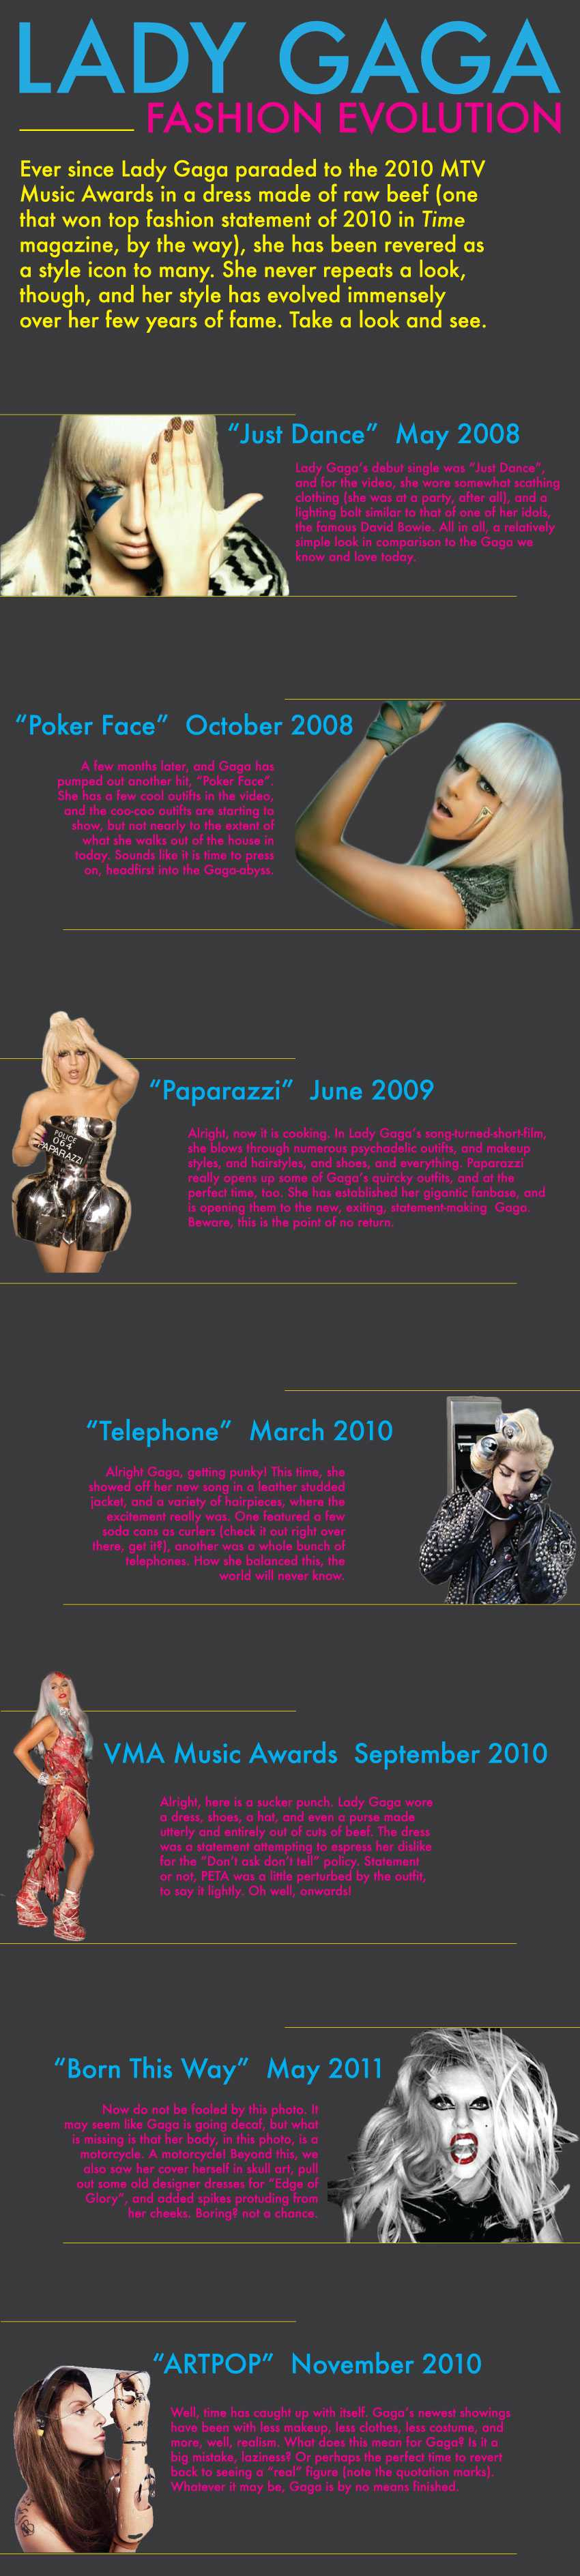 Lady-Gaga-Infographic_save2